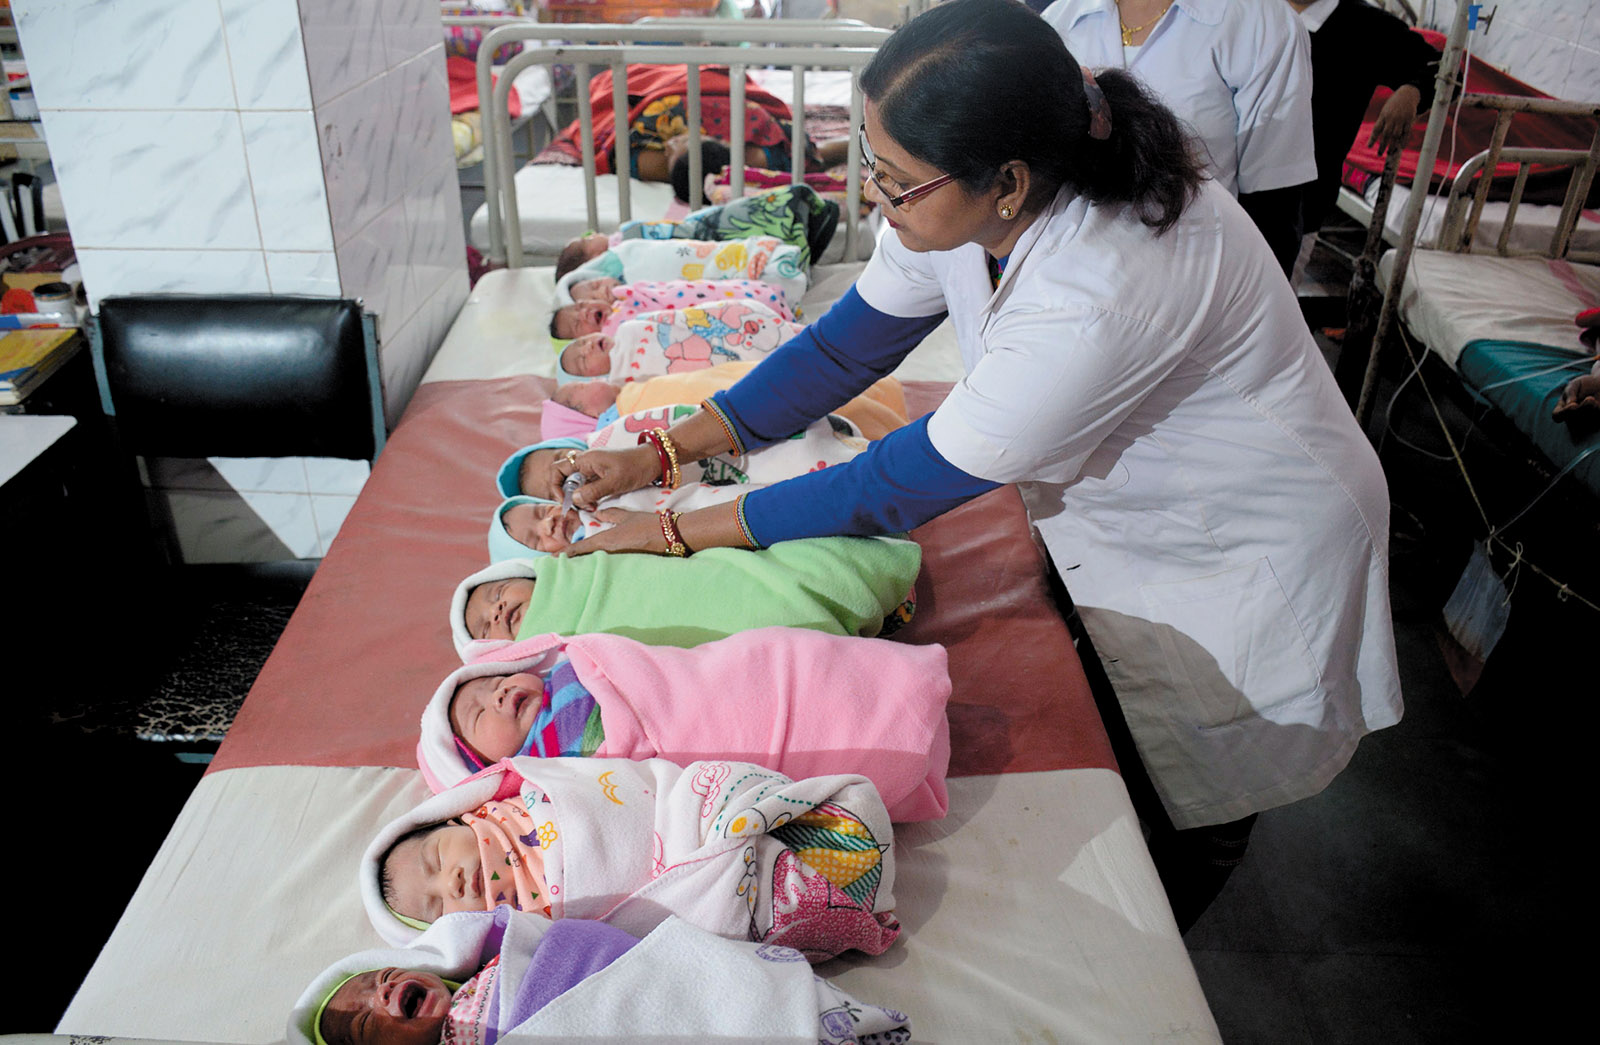 An Indian health official administering polio vaccine drops to newborn babies at a hospital in Agartala, India, as part of a nationwide program to eradicate polio, January 2018